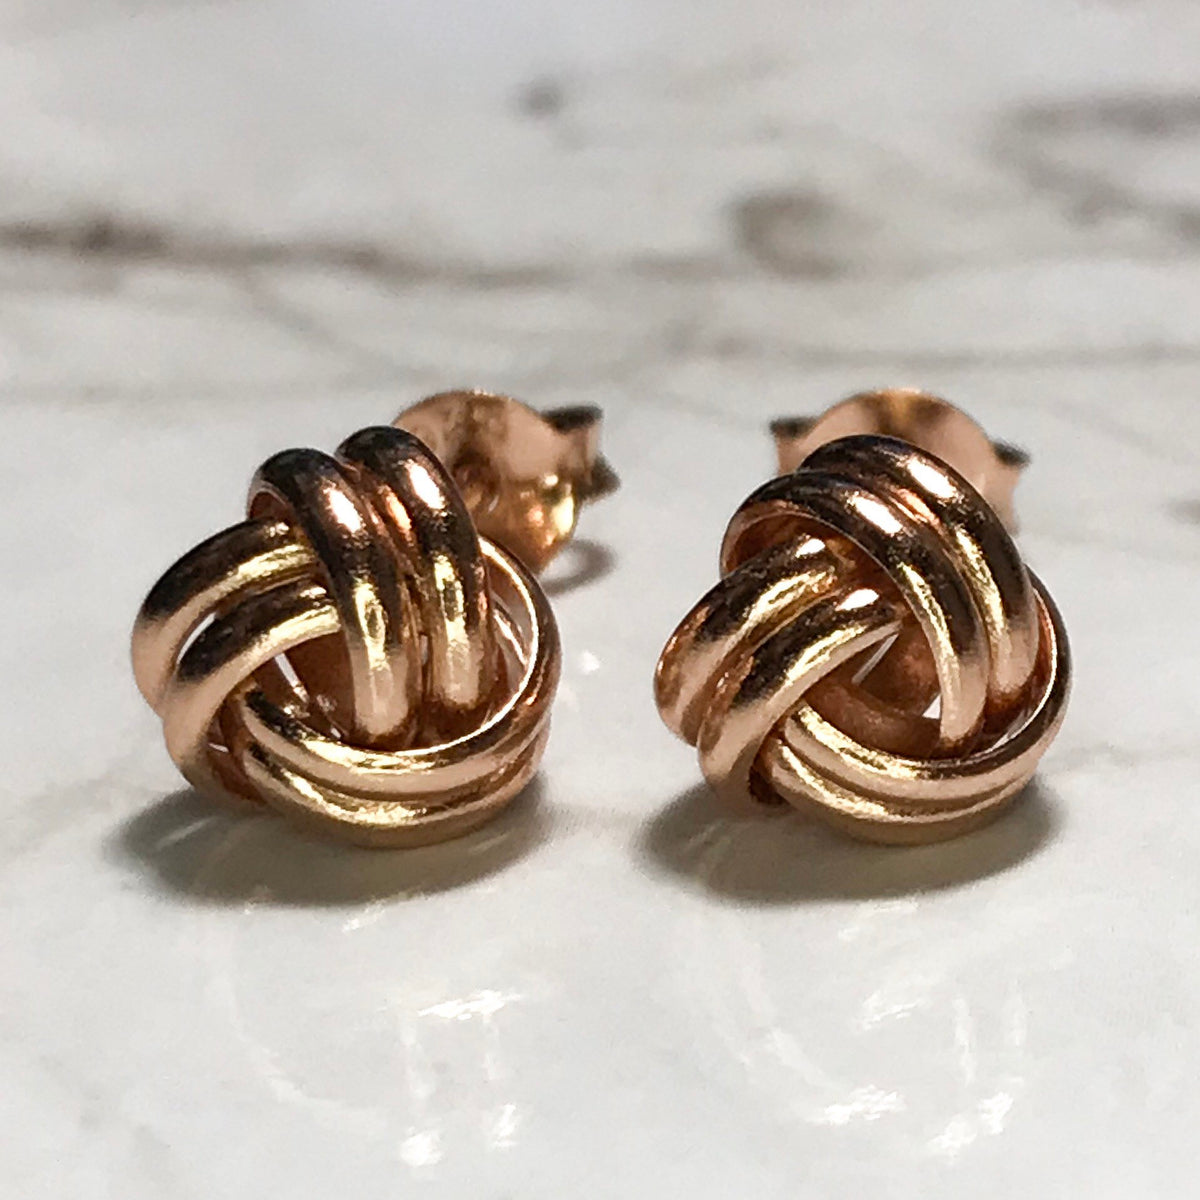 NEW 14K Gold Layered on Sterling Silver Small Yarn Design Stud Earrings